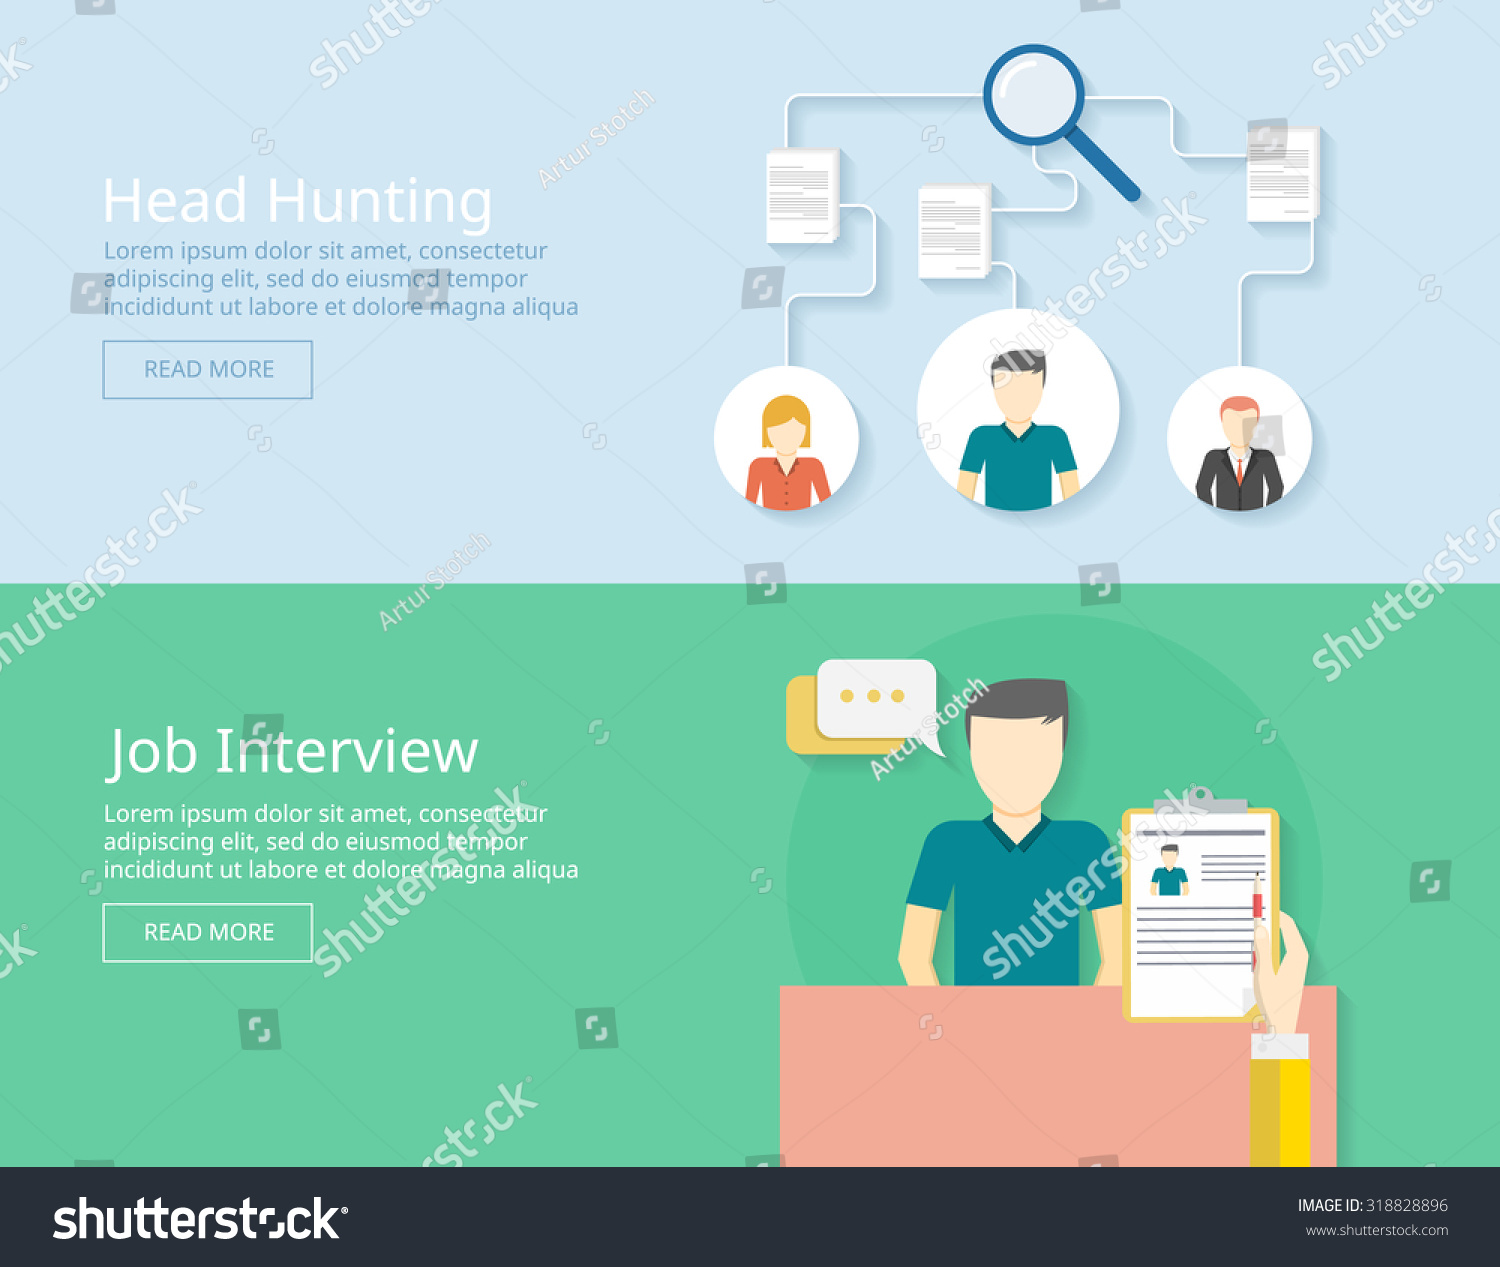 job and head hunting recruiting employees job interview concept save to a lightbox